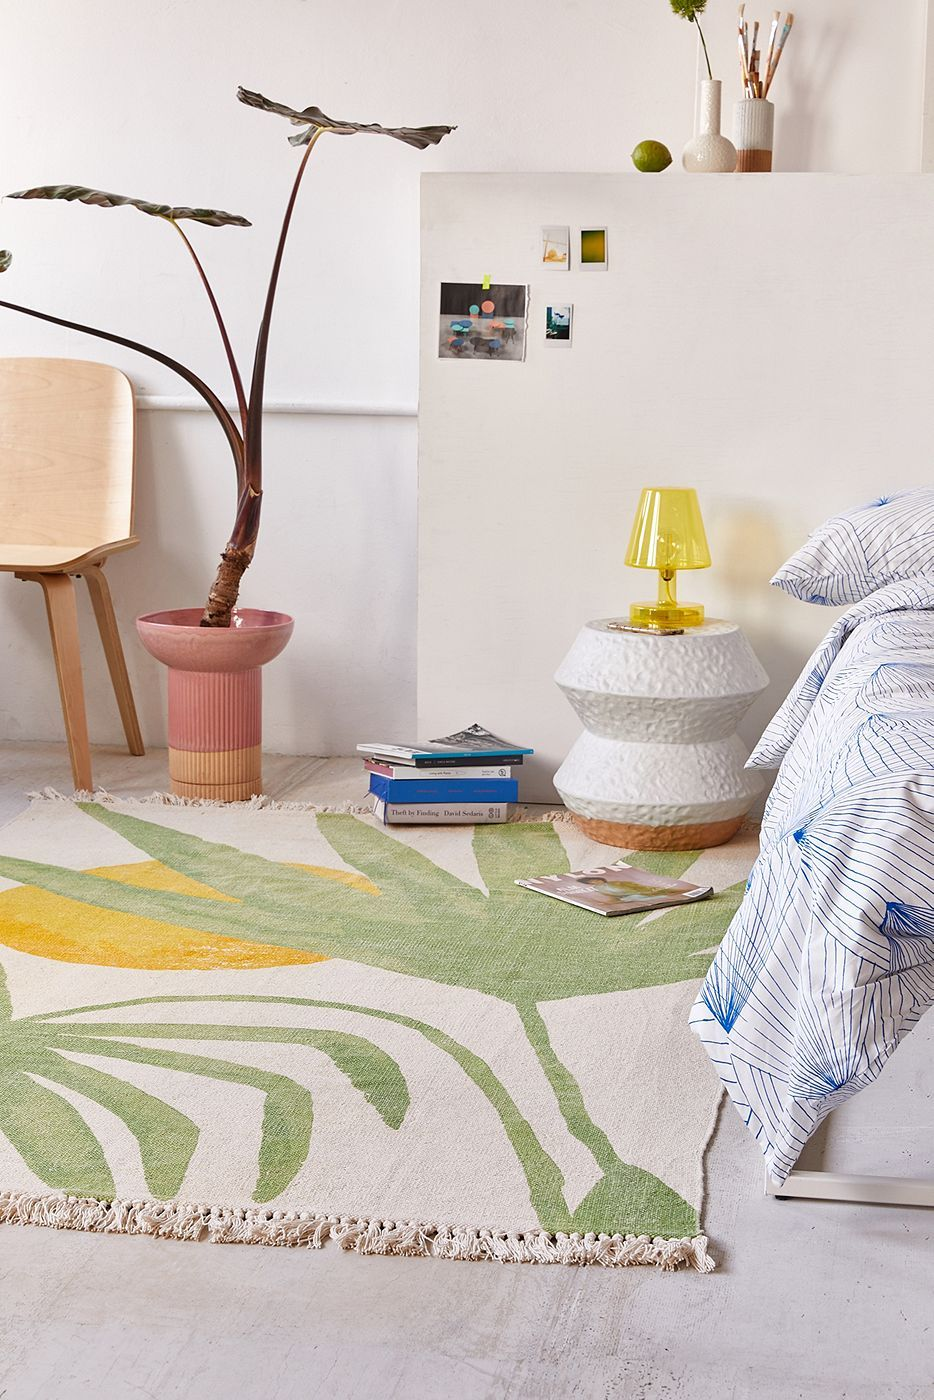 The 18 Best Dorm Rugs That Will Ever Grace Your Closet-Sized Space